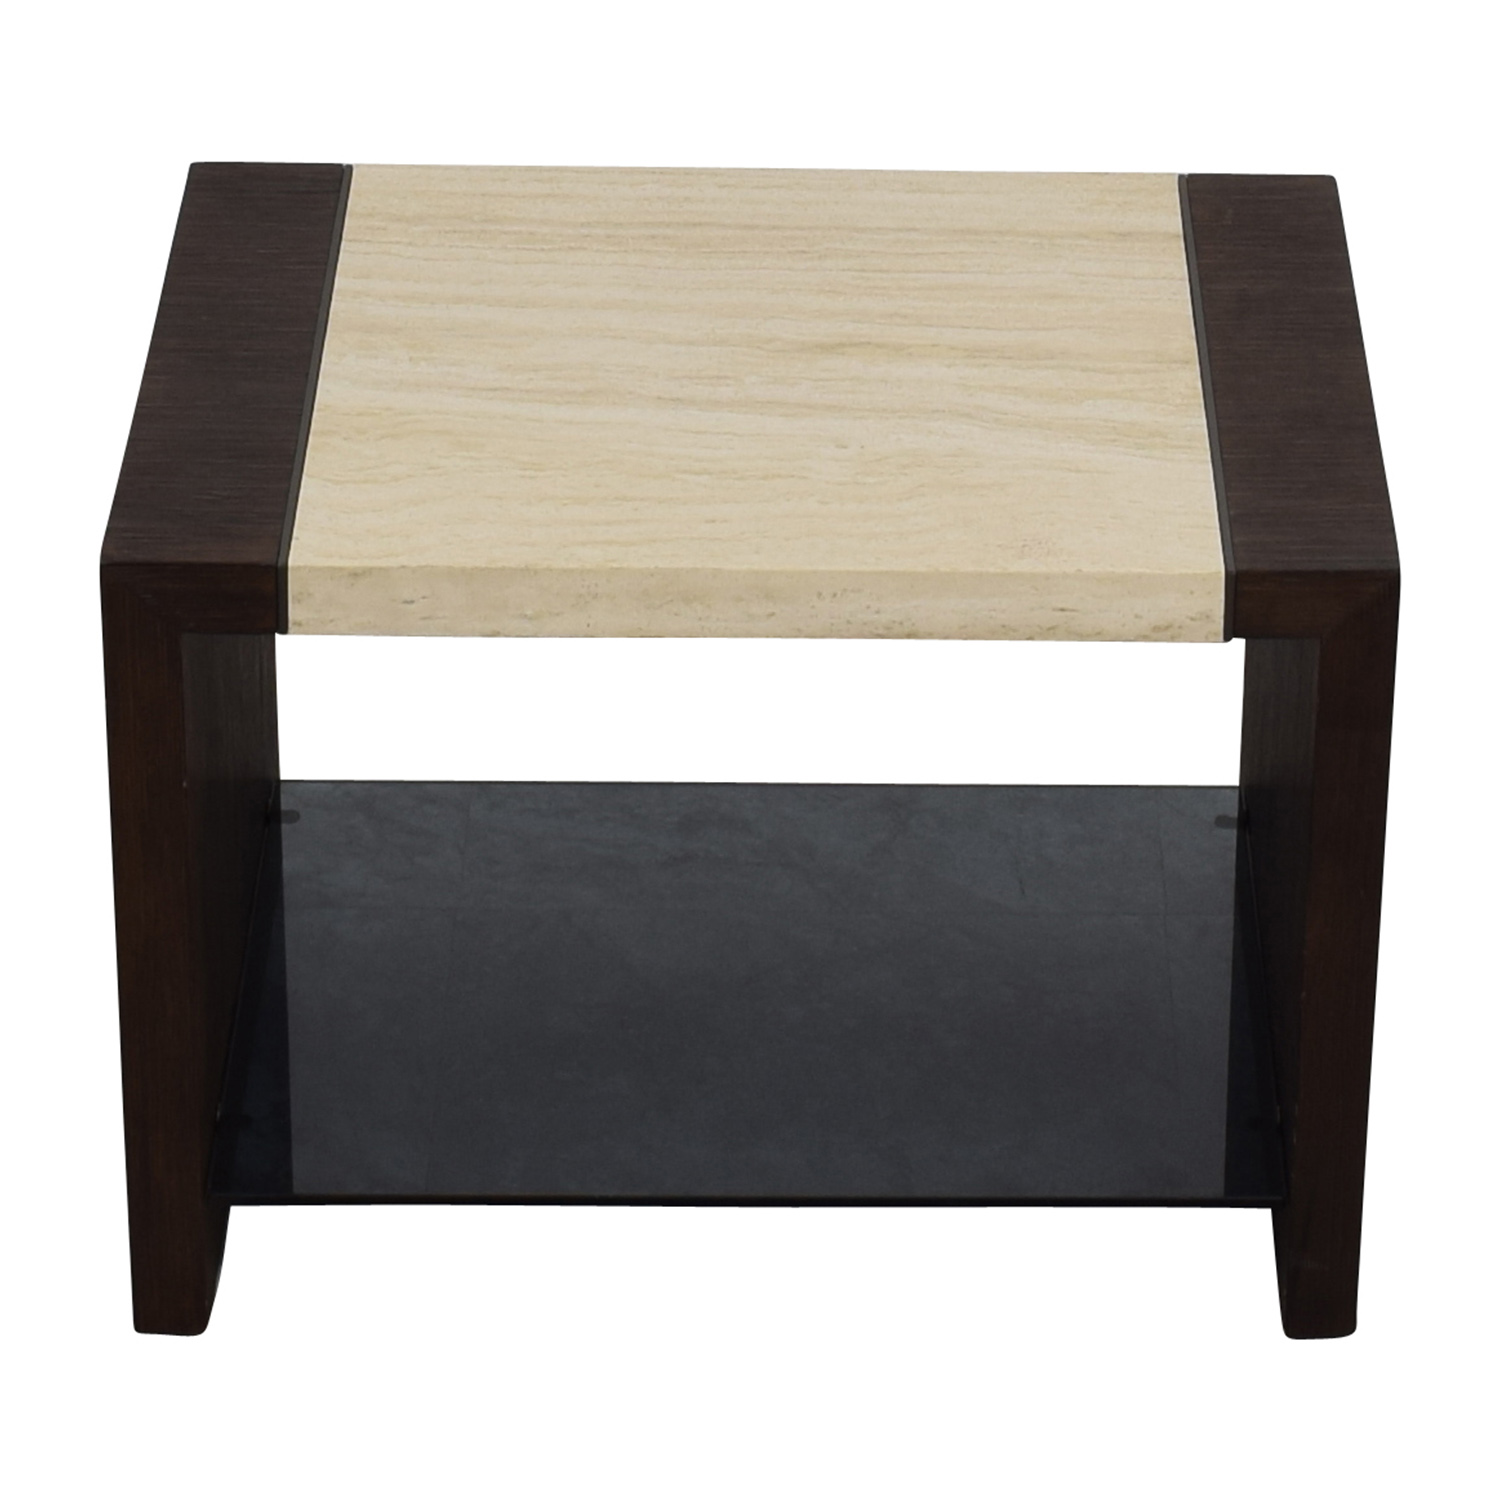 OFF Calvin Klein Calvin Klein Wood And Stone End Table Tables - Calvin coffee table